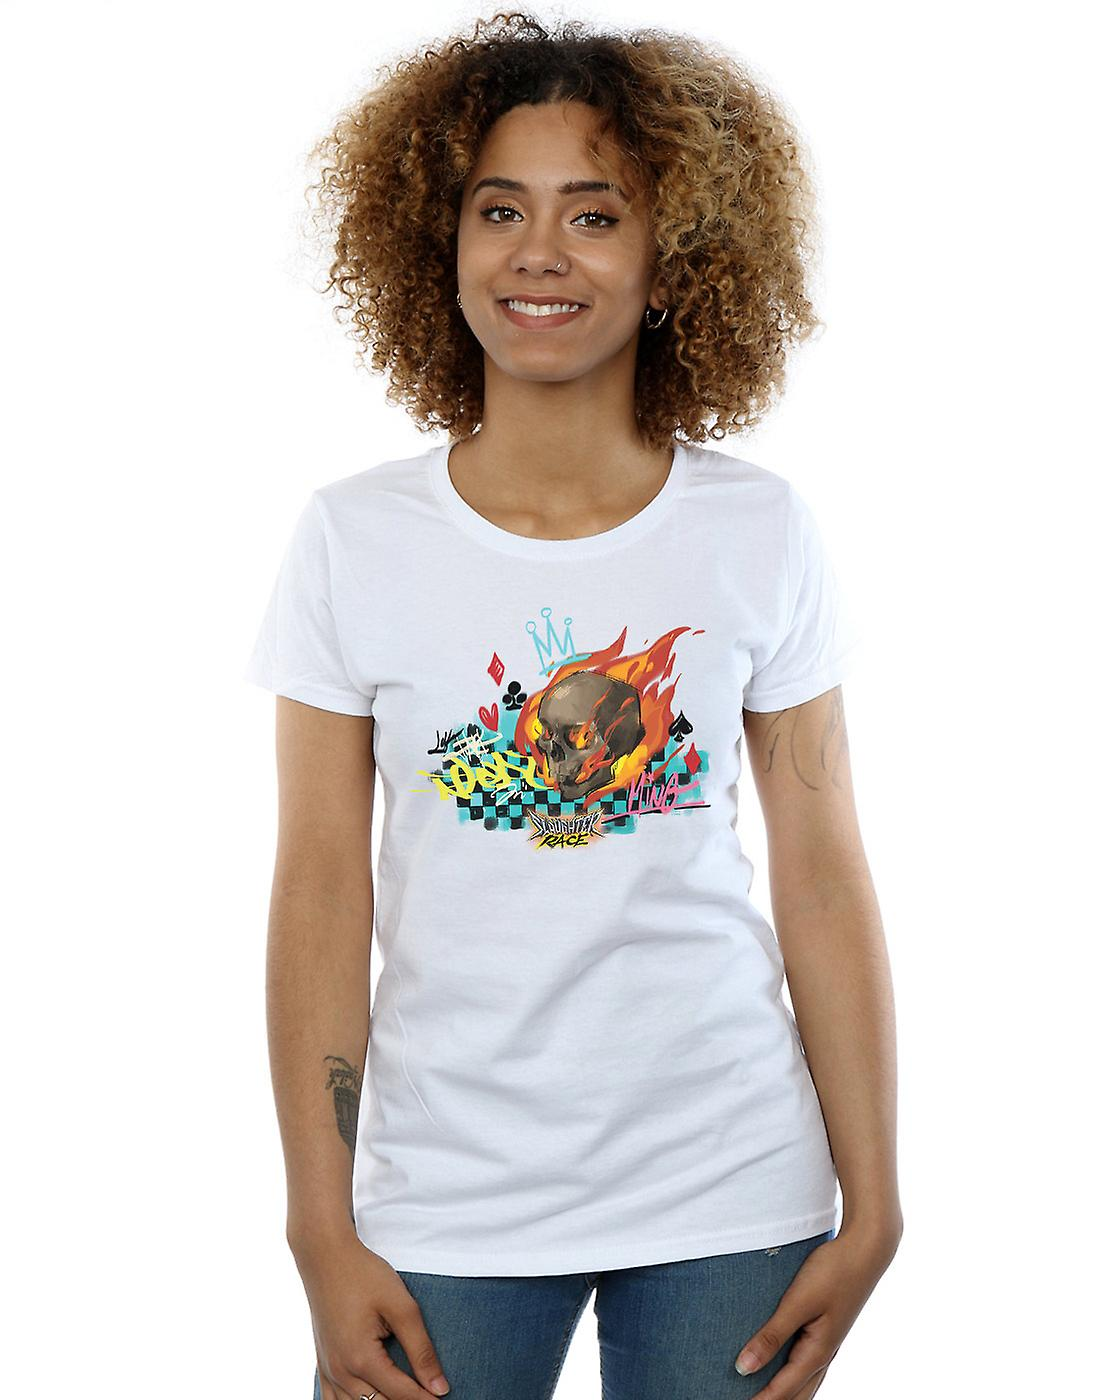 Disney Women's Wreck It Ralph Race Skull T-Shirt